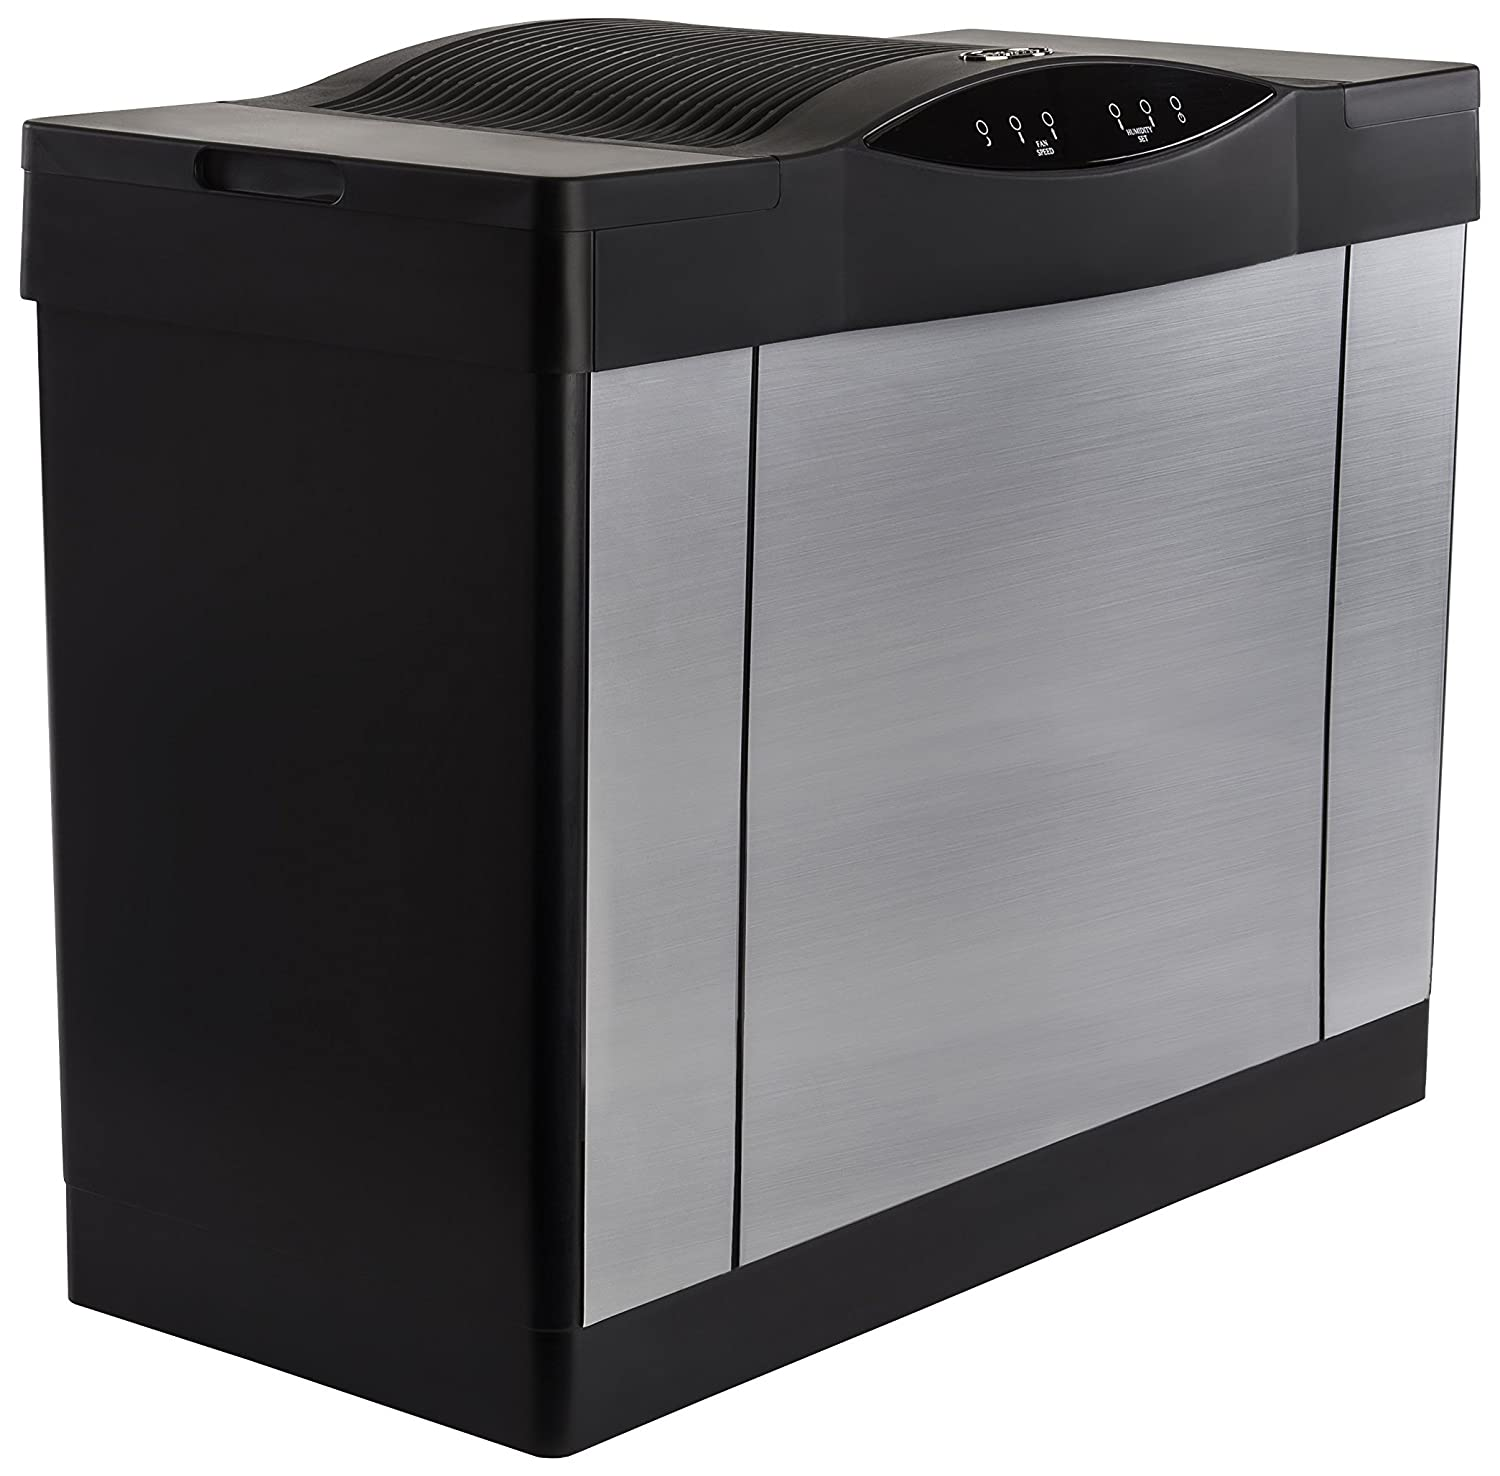 AIRCARE 4DTS 900 Whole House Console Evaporative Humidifier for 3600 sq. ft, Brushed Nickel